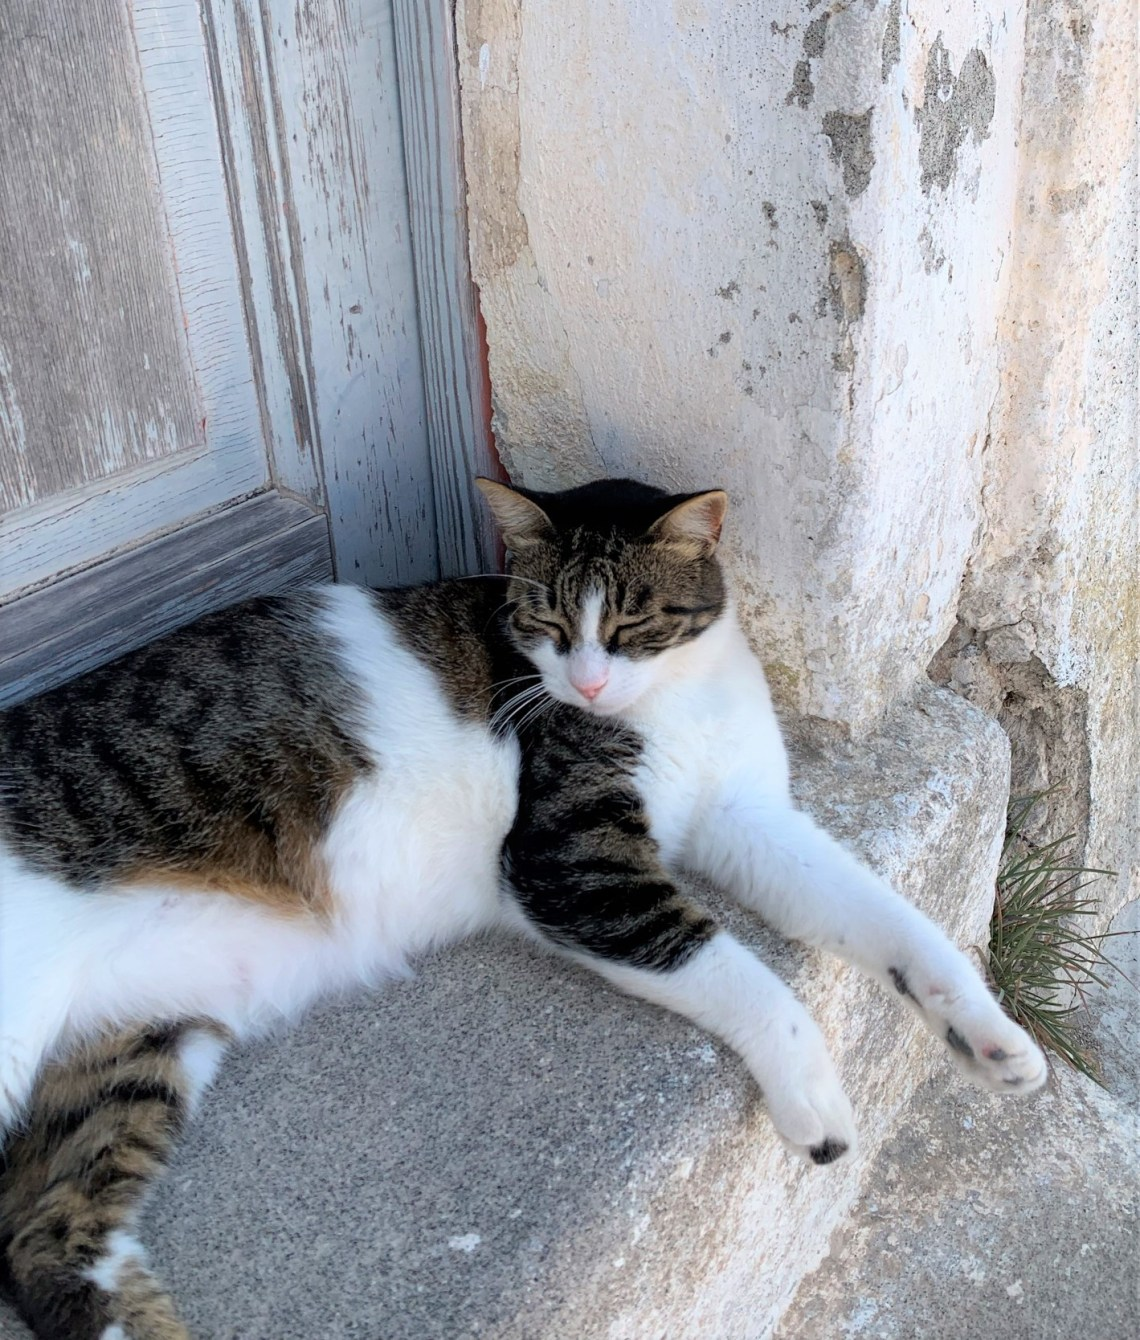 cats of the cyclades